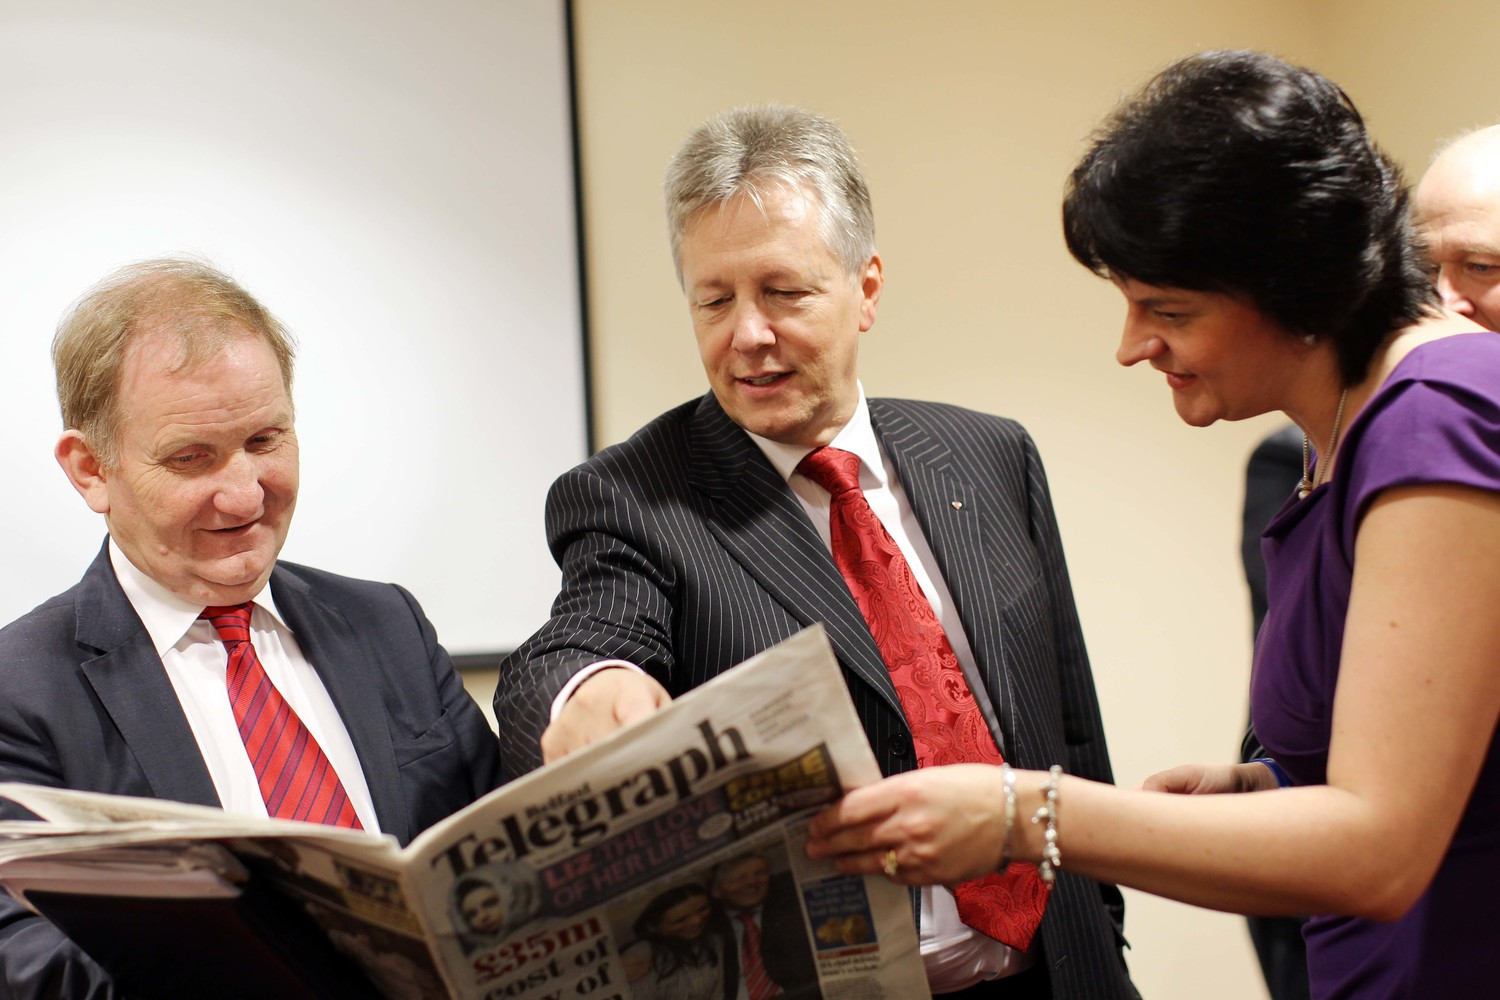 Peter Robinson and DUP colleagues reading the Belfast Telegraph